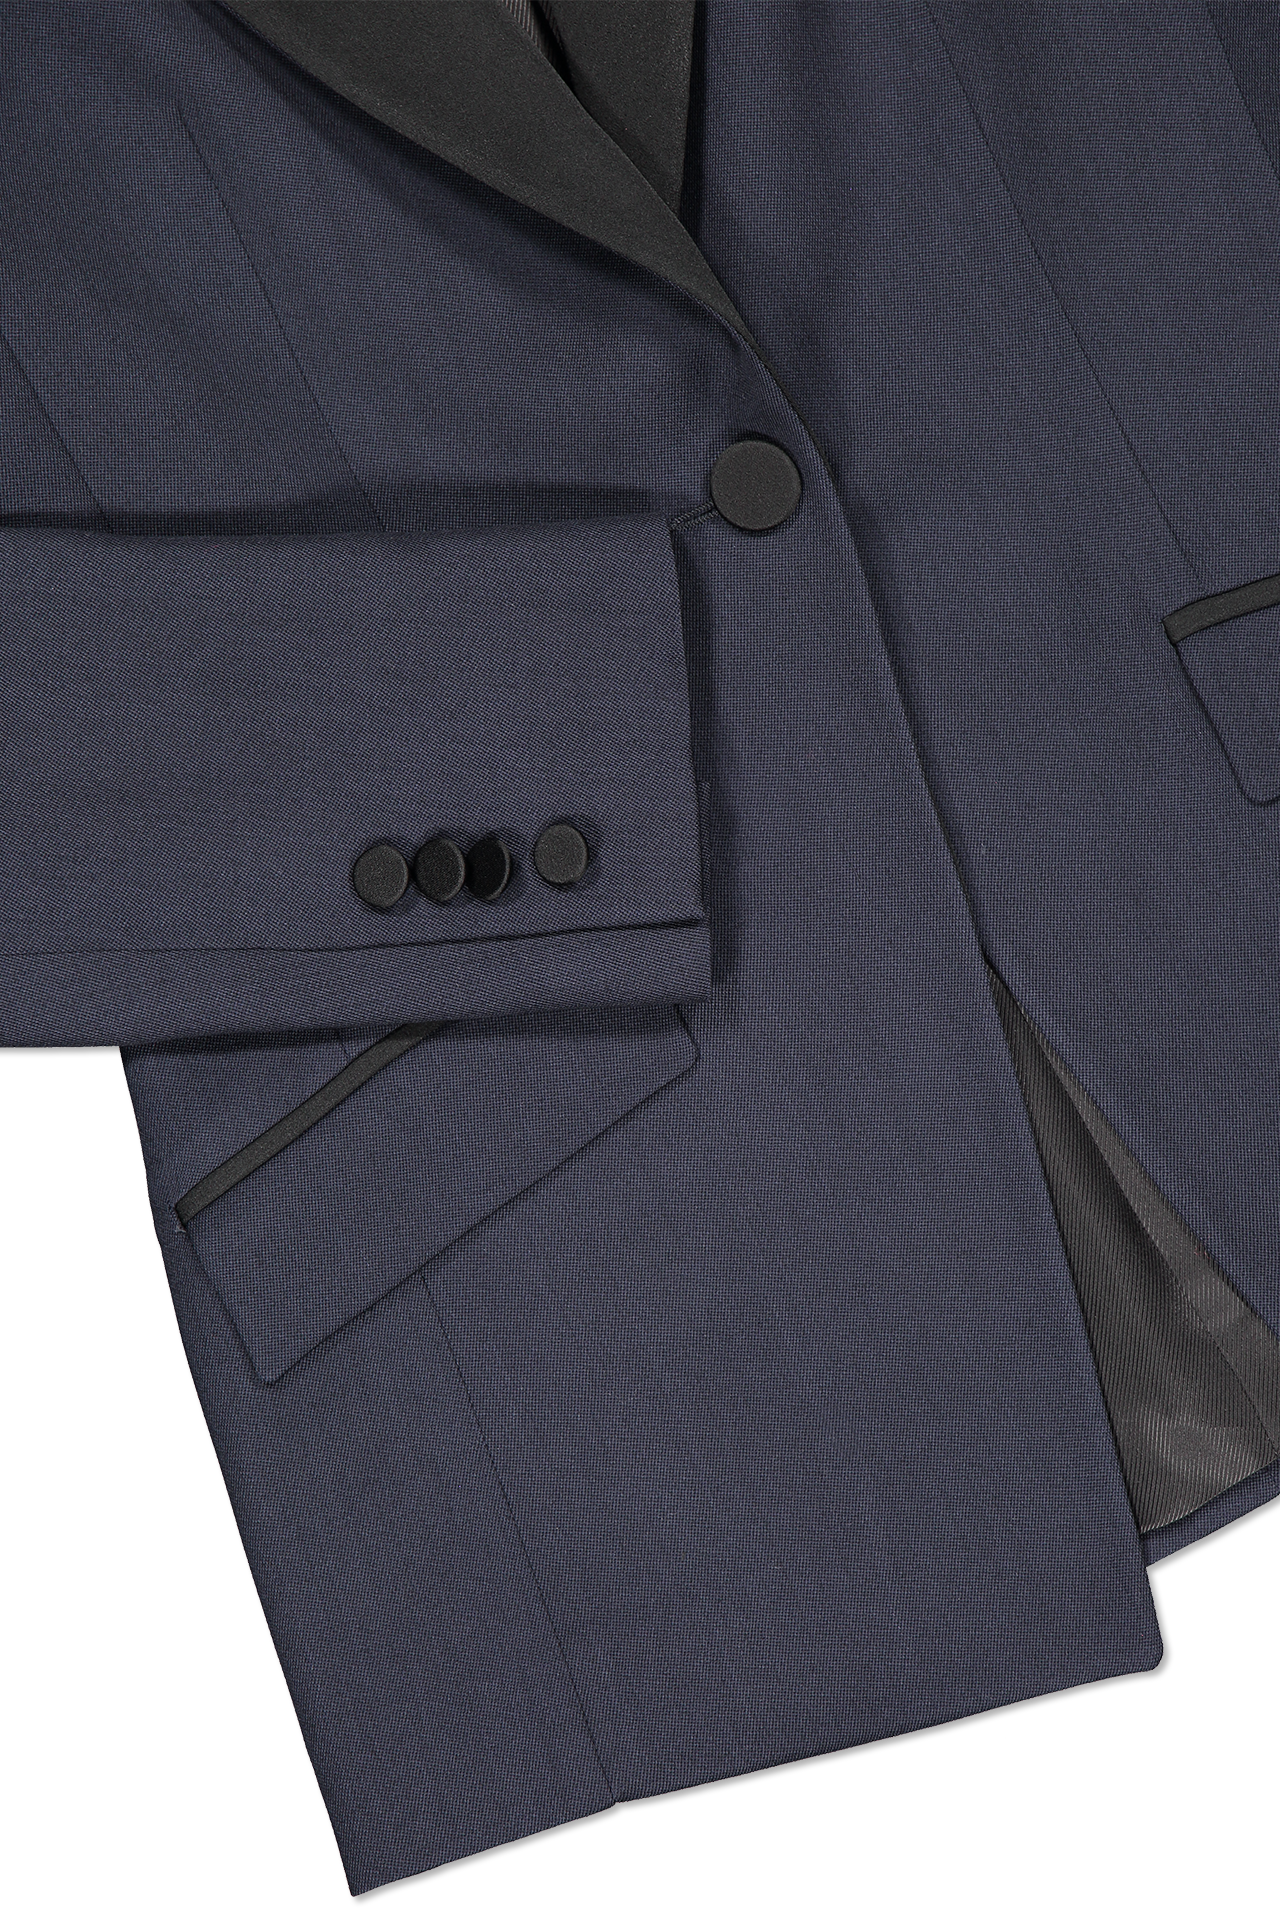 Hemline and cuff detail image of Pallas Chypre Tuxedo Jacket